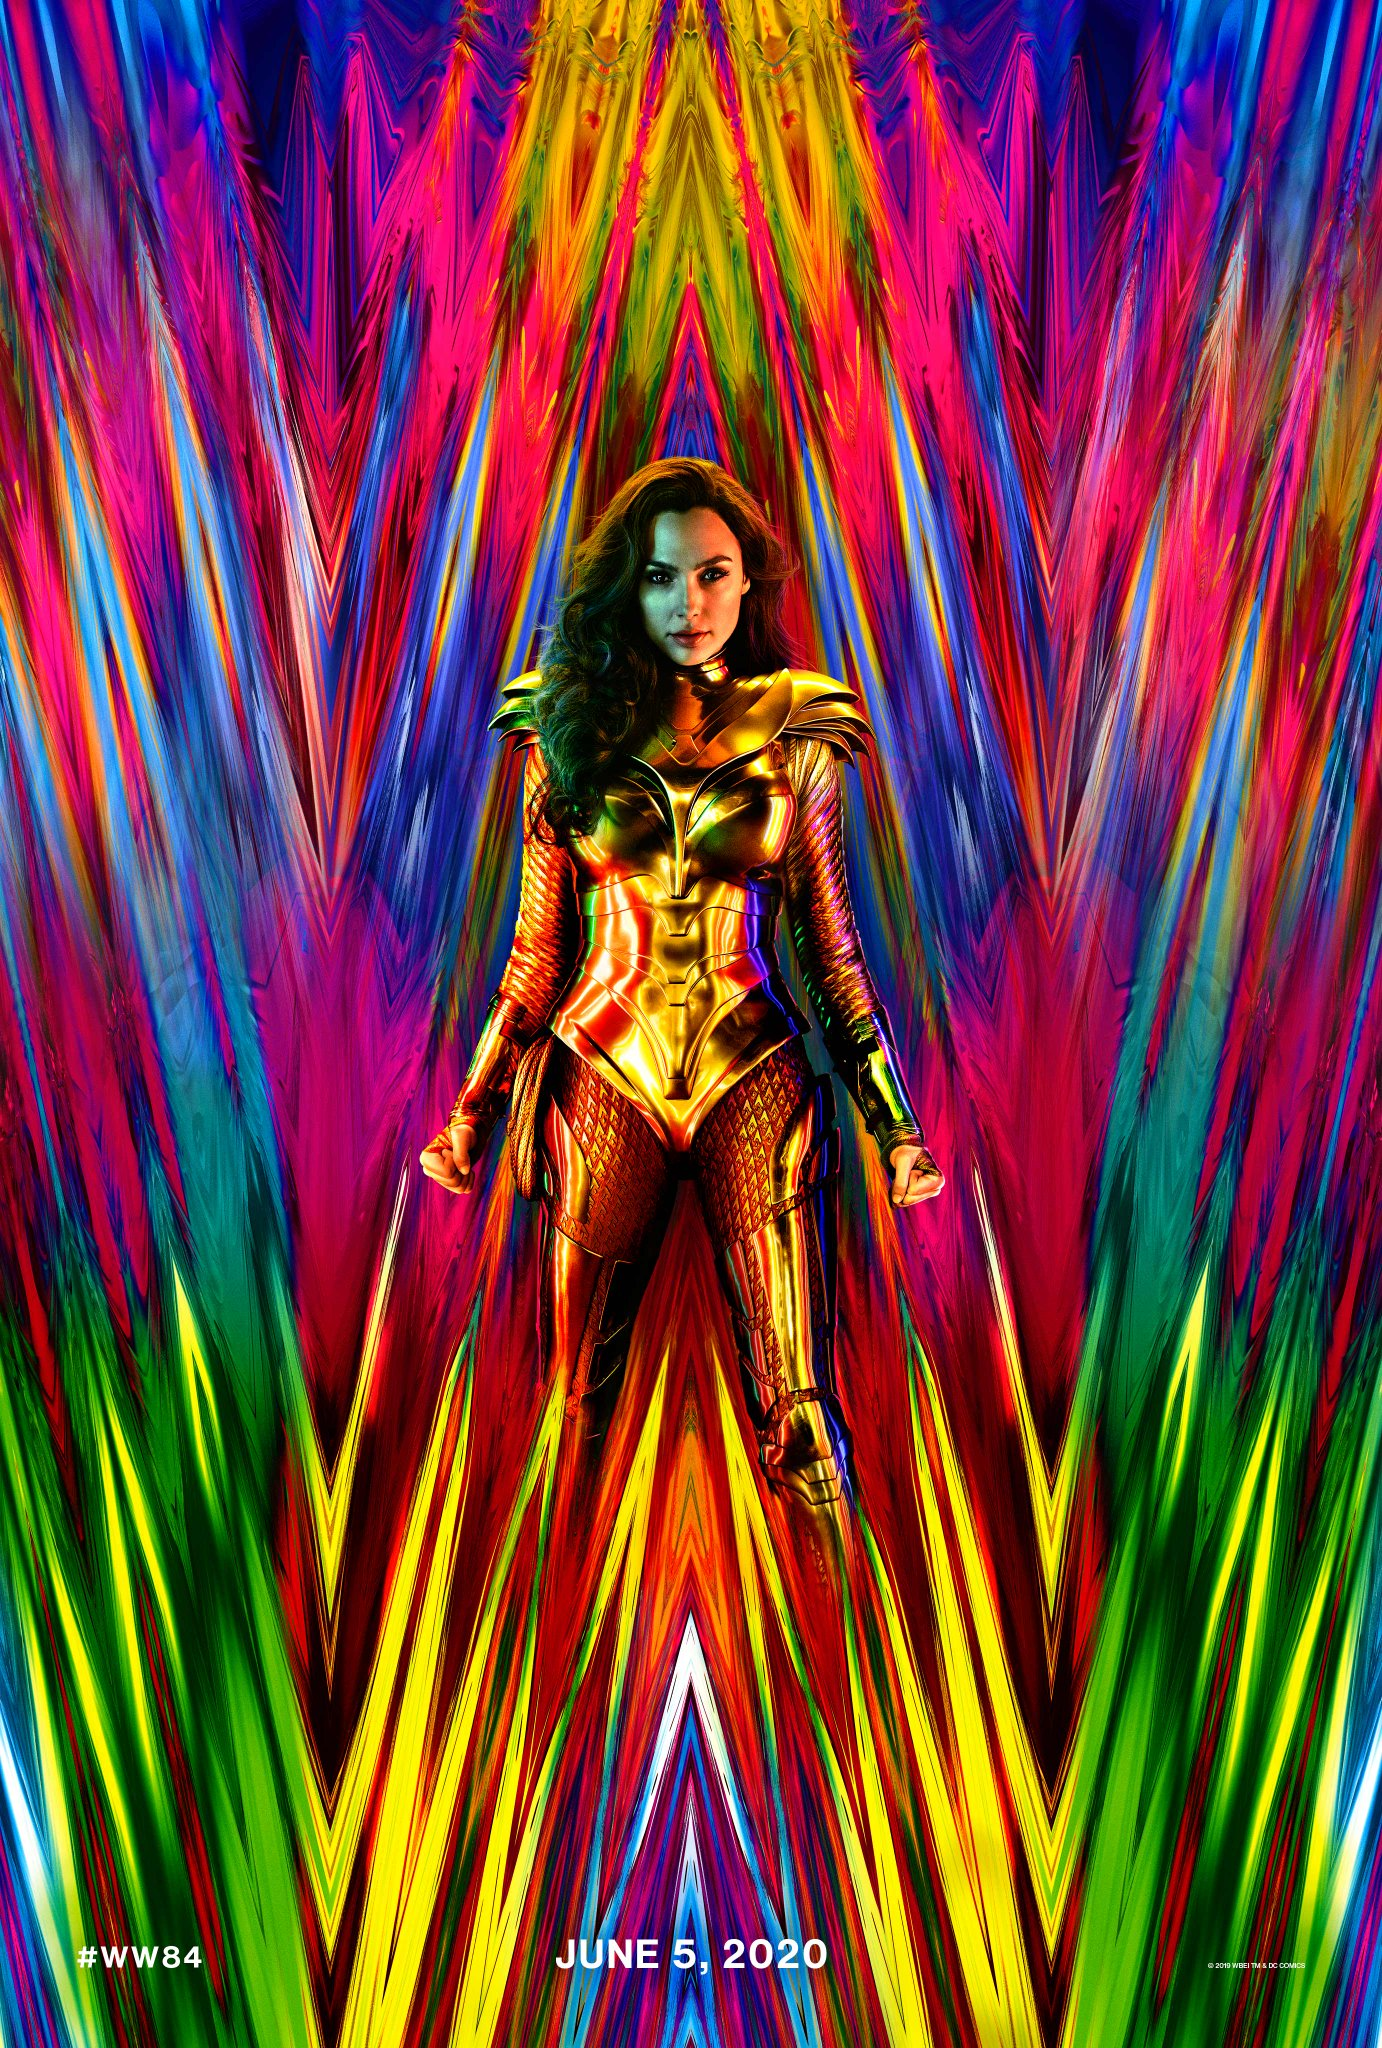 Take a look at the new Wonder Woman costume from the upcoming Wonder Woman sequel, Wonderments Woman 1984.